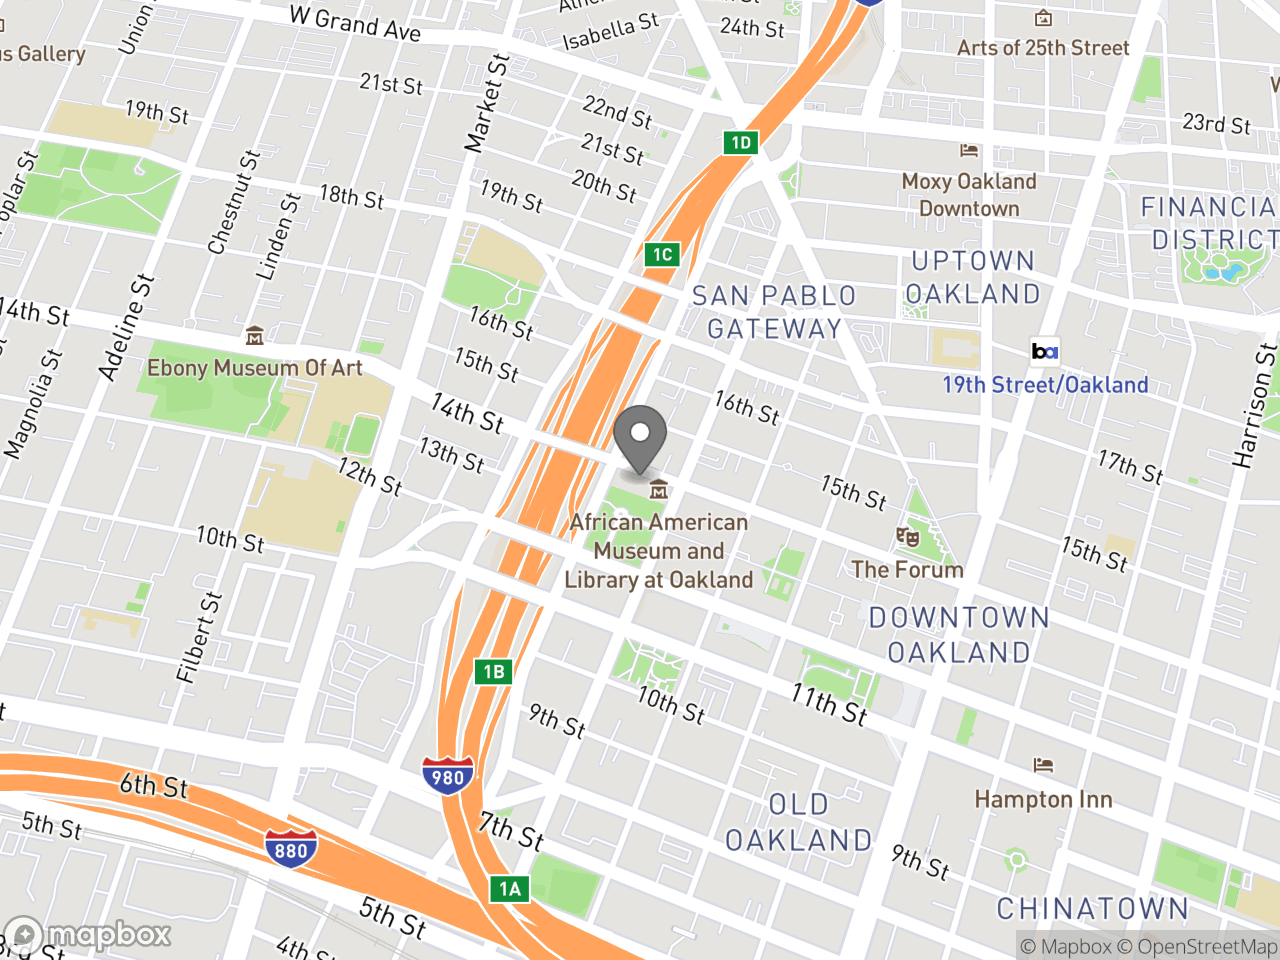 Map image for 12-2-19 PAAC Meeting, located at 1 Frank H. Ogawa Plaza, Hearing Room 4 in Oakland, CA 94612